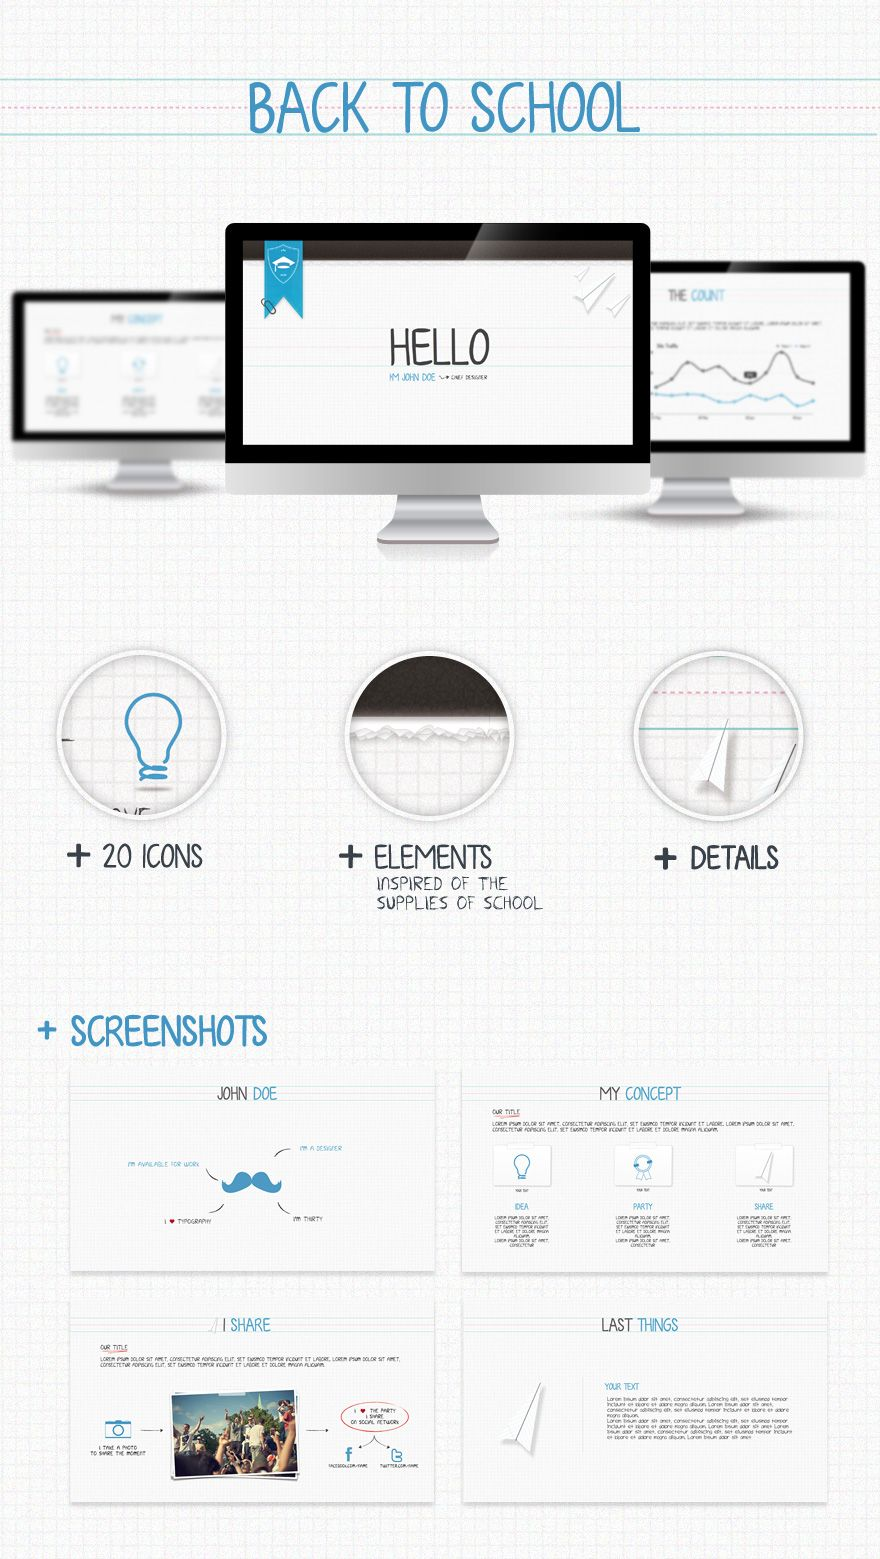 Back to school project for presentation branding and identity presentation powerpoint templates from graphicriver toneelgroepblik Images